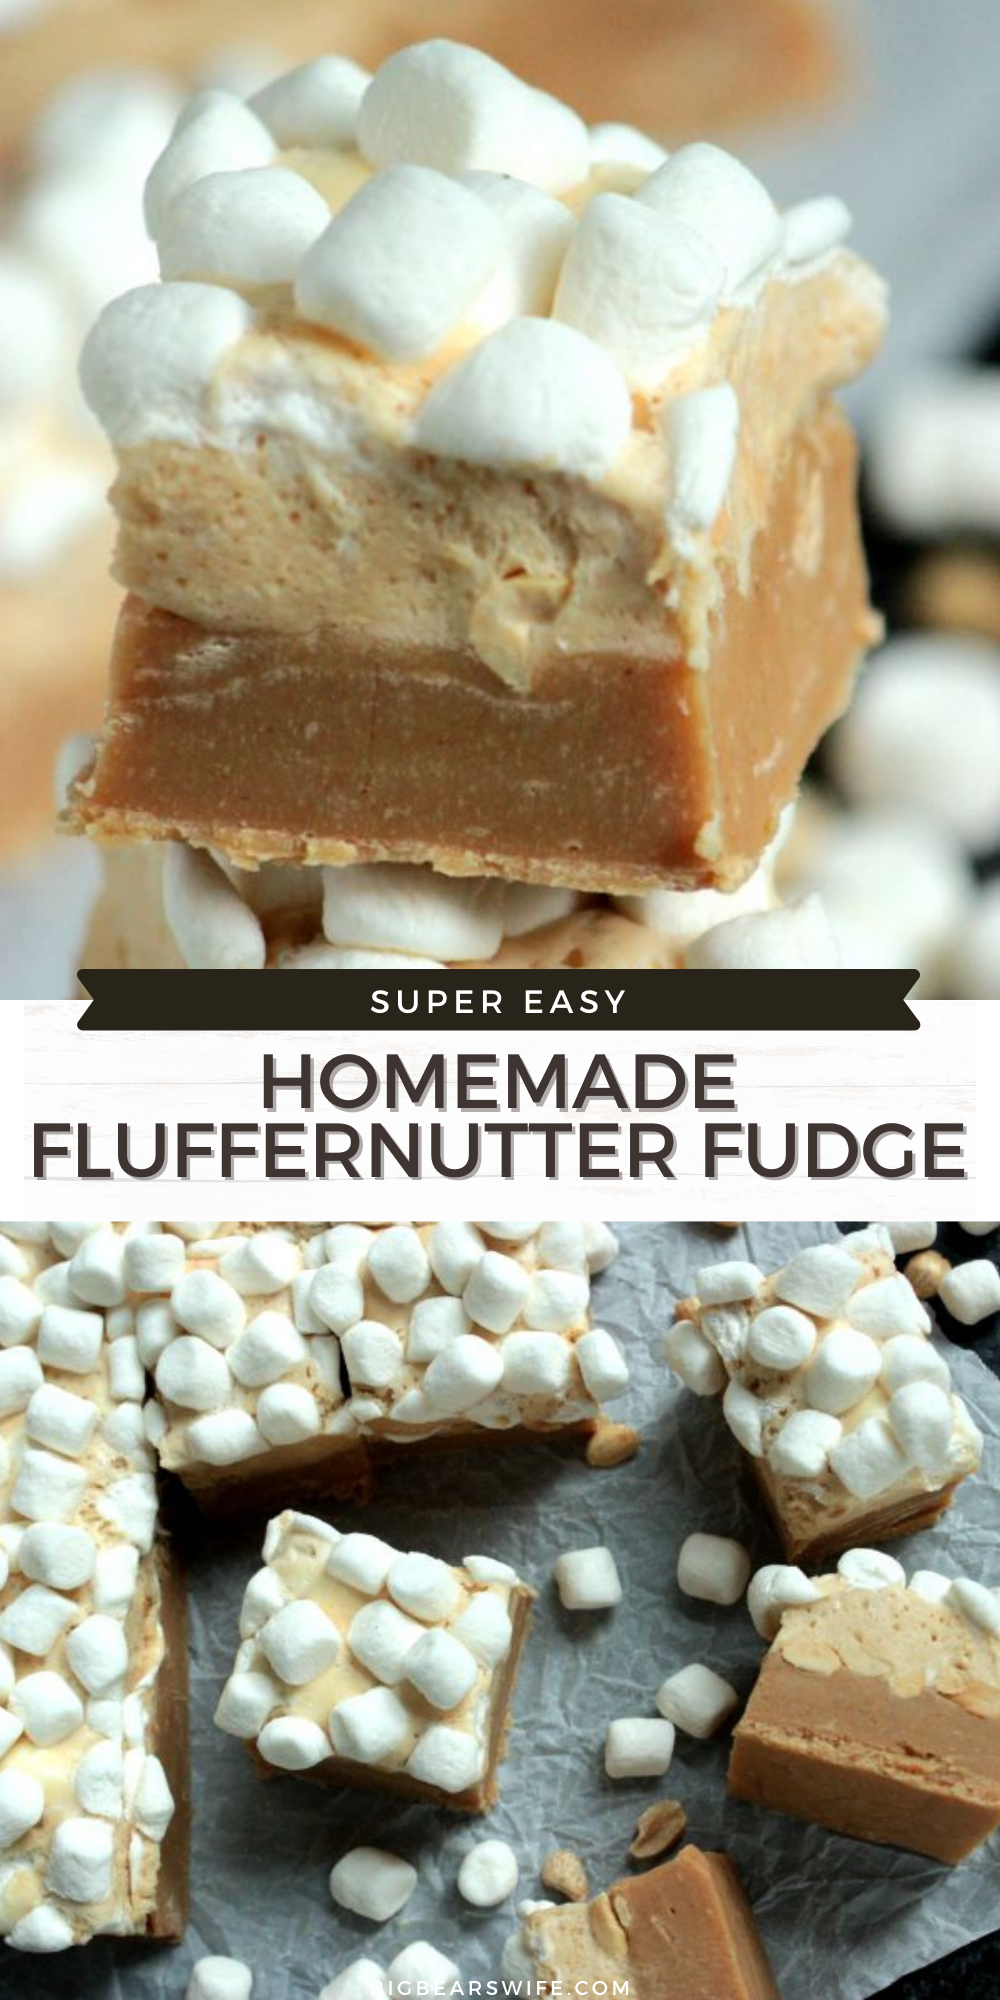 This Homemade Fluffernutter Fudge has layers of Peanut Butter and Marshmallow Peanut Butter Fudge stacked on top of each other for the perfect Fluffernutter dessert!   via @bigbearswife